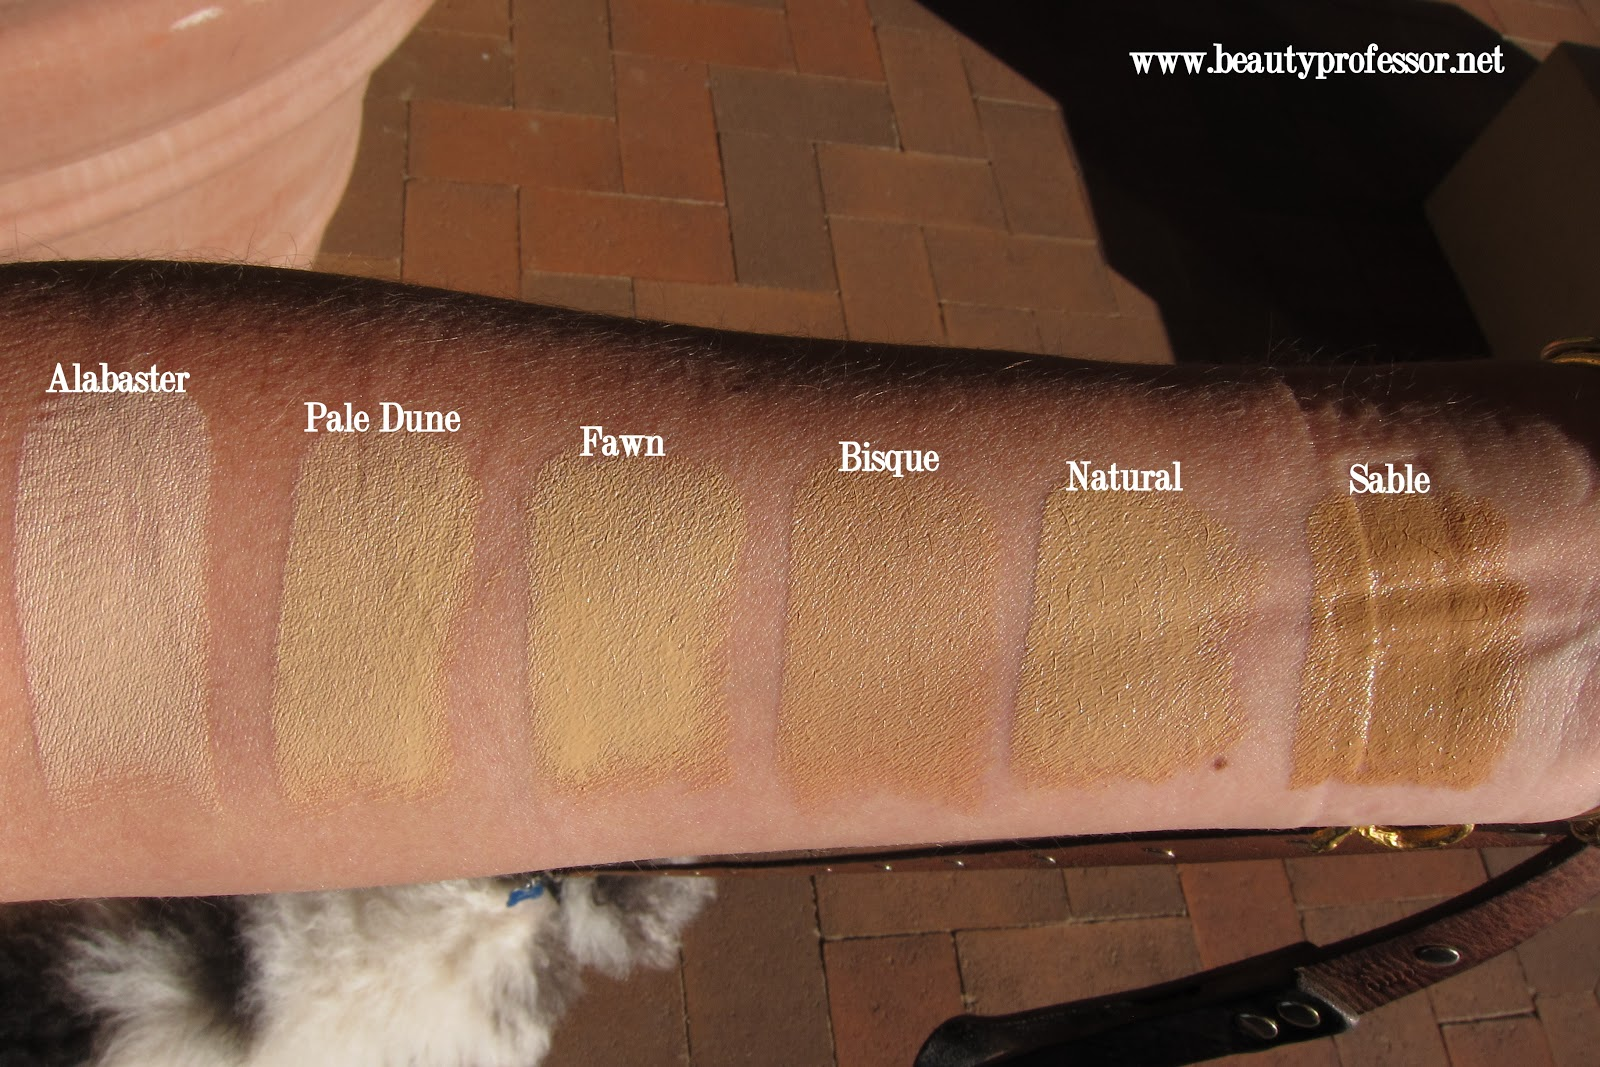 Fashion Fair Foundation Swatches Traceless Foundation Stick